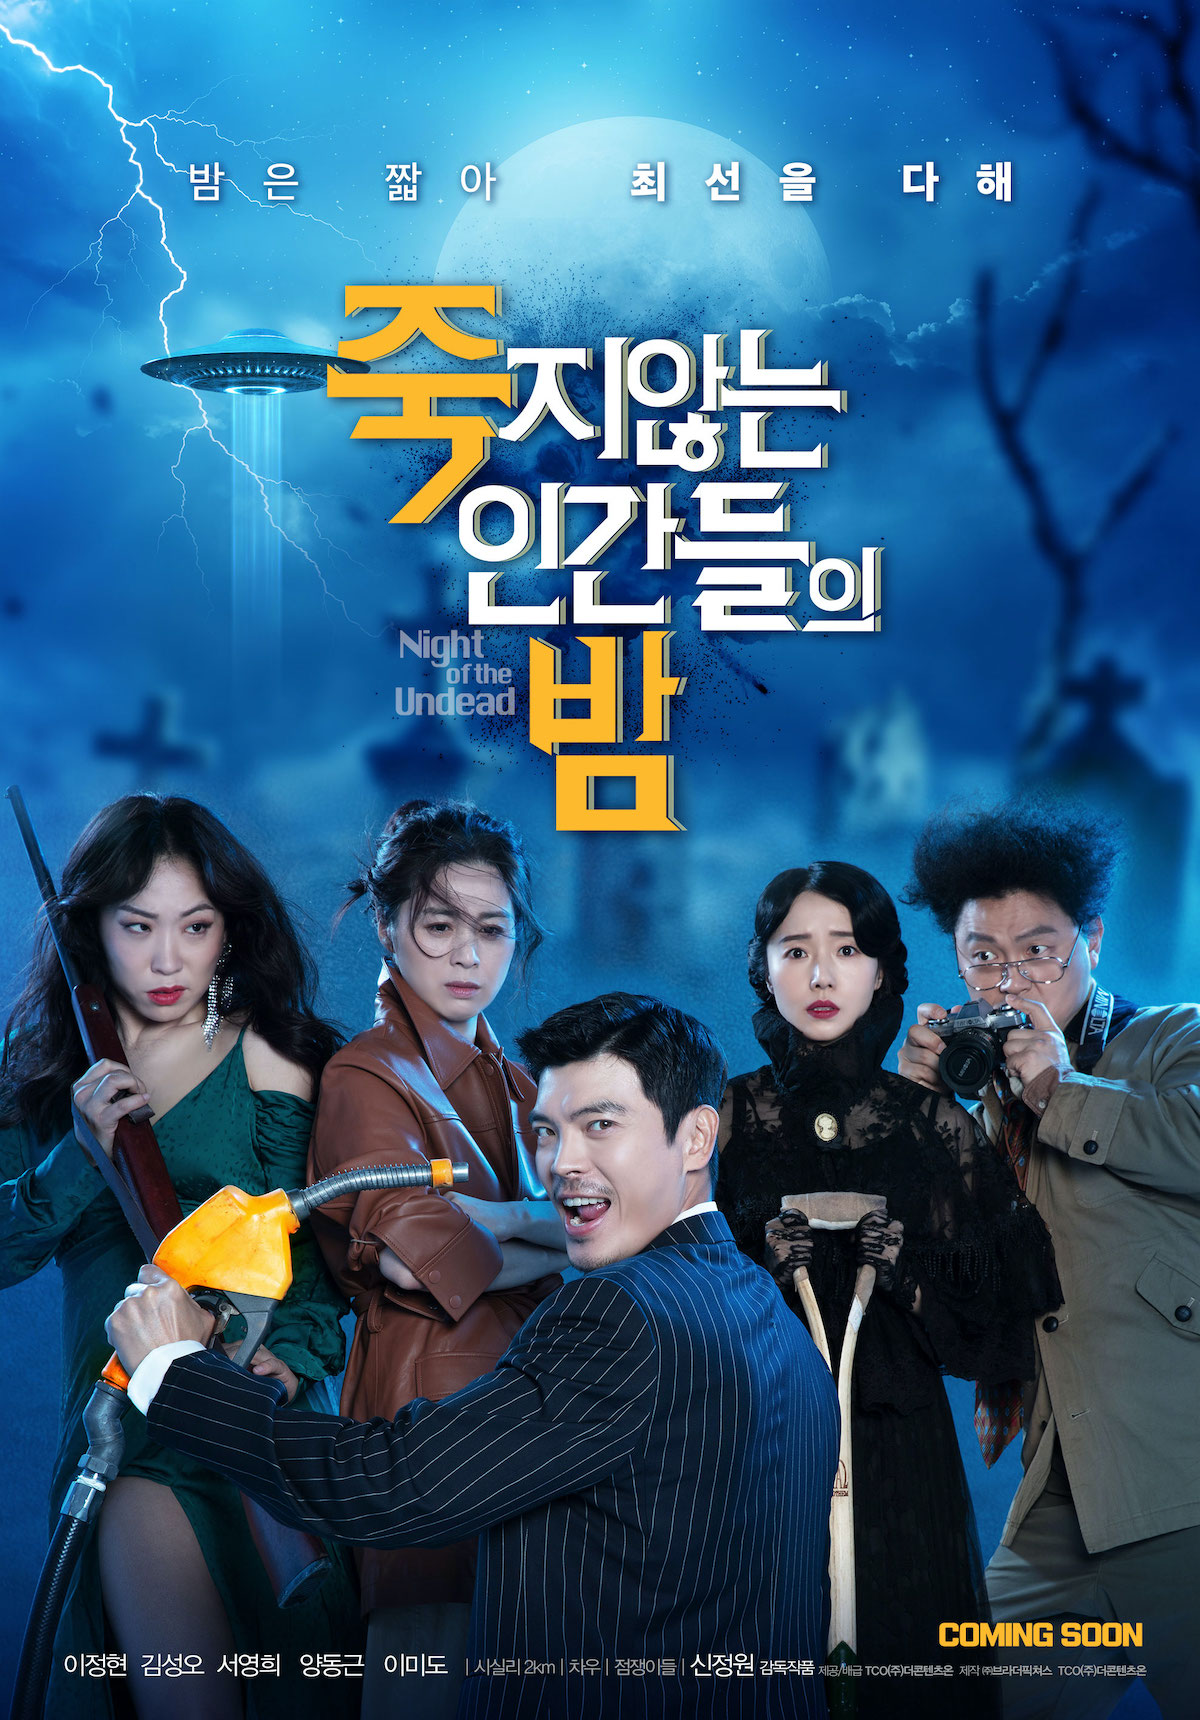 Night of the Undead (2019) Full Movie [In Korean] With Hindi Subtitles | WebRip 720p [1XBET]